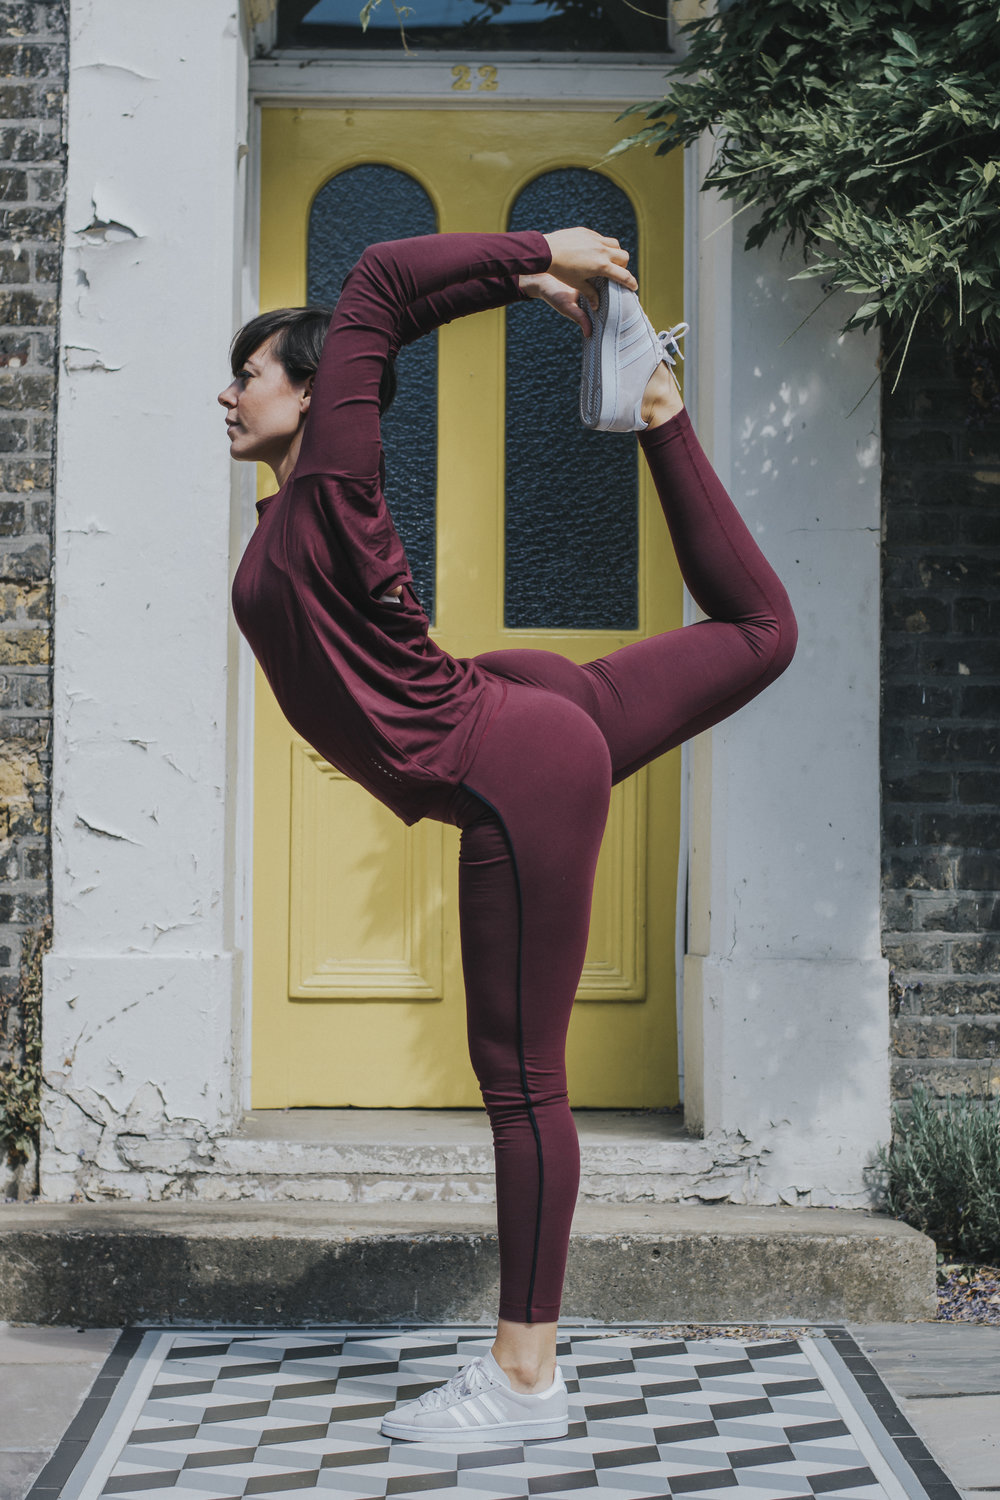 yoga at the pub - Get ready for a new weekly Yoga class starting at the Hare & Hounds - Suitable for all levels.£10 a classYoga mats available for rent. 278 Lea Bridge Rd E10 7LD Leyton